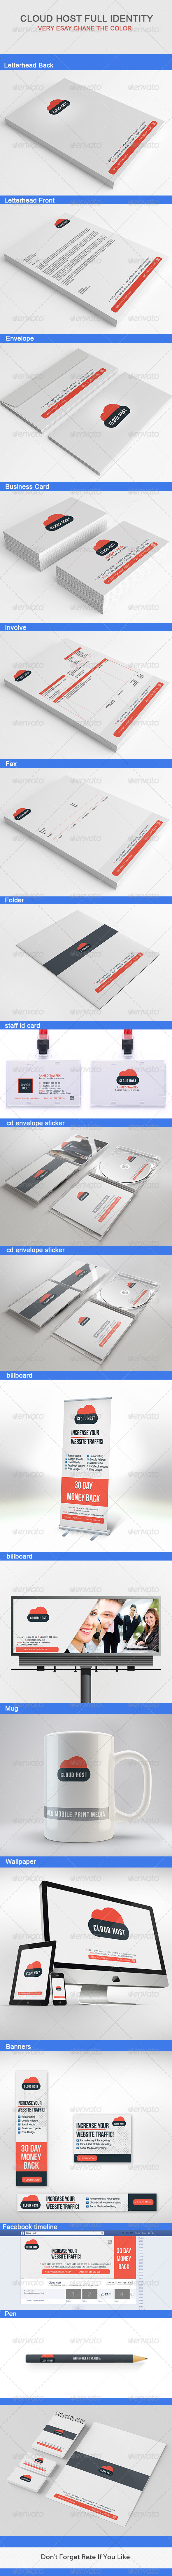 GraphicRiver Cloud Host Full Identity 6622841